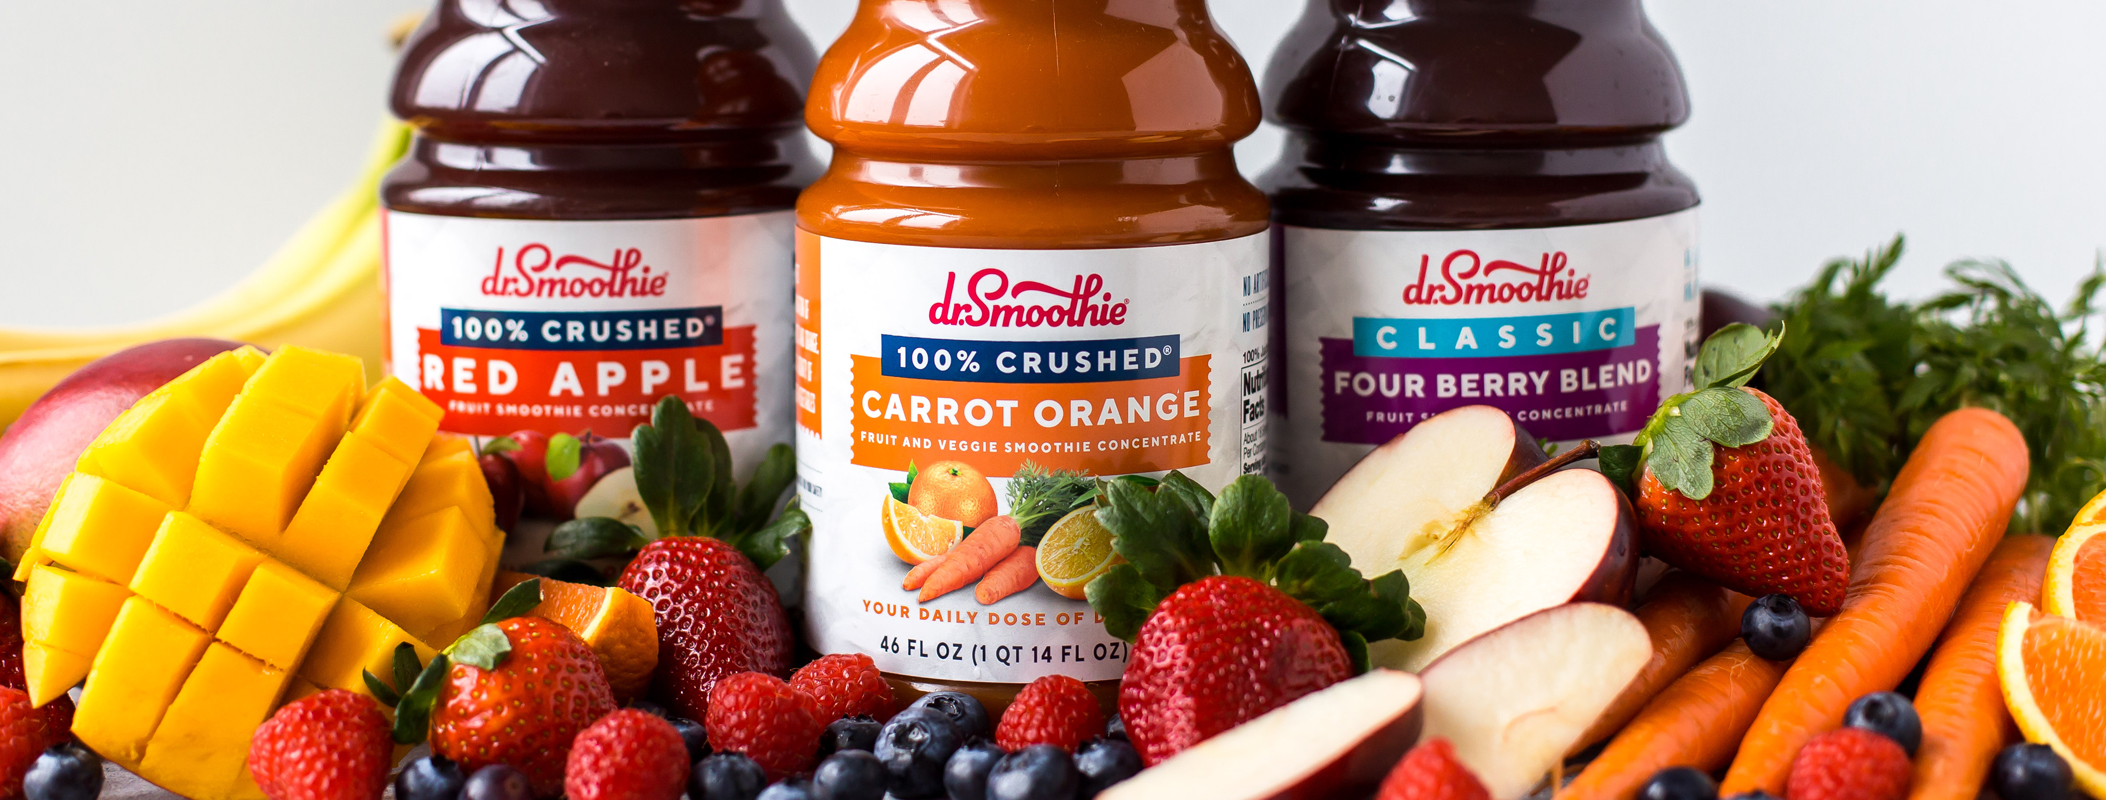 smoothie branding and label design